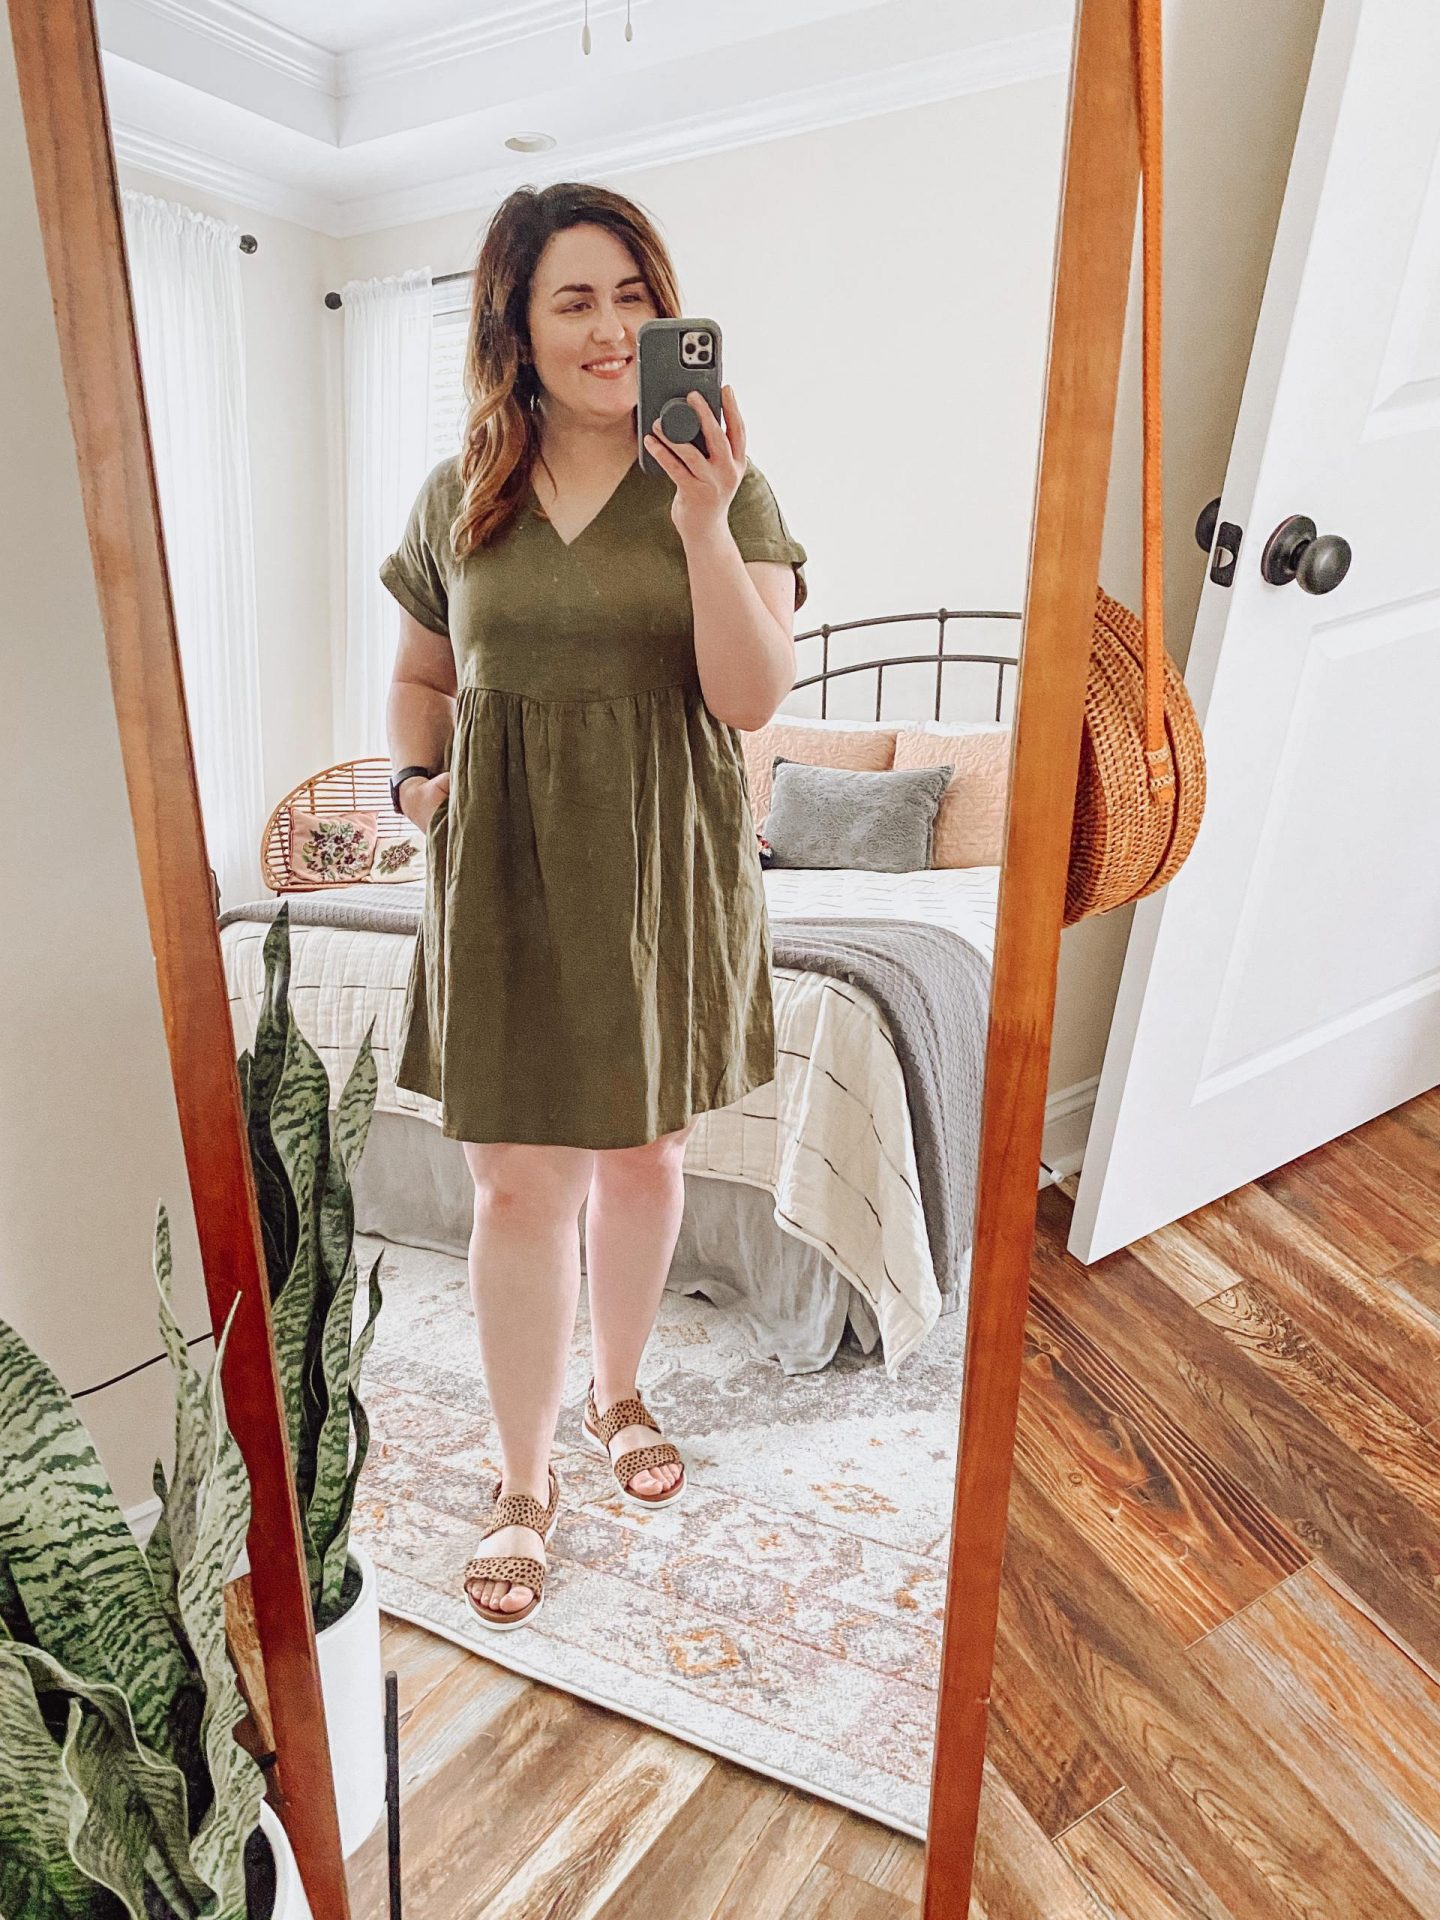 NC blogger Rebecca Lately is sharing how she styles olive green for summer. Check out three different ways to wear color!